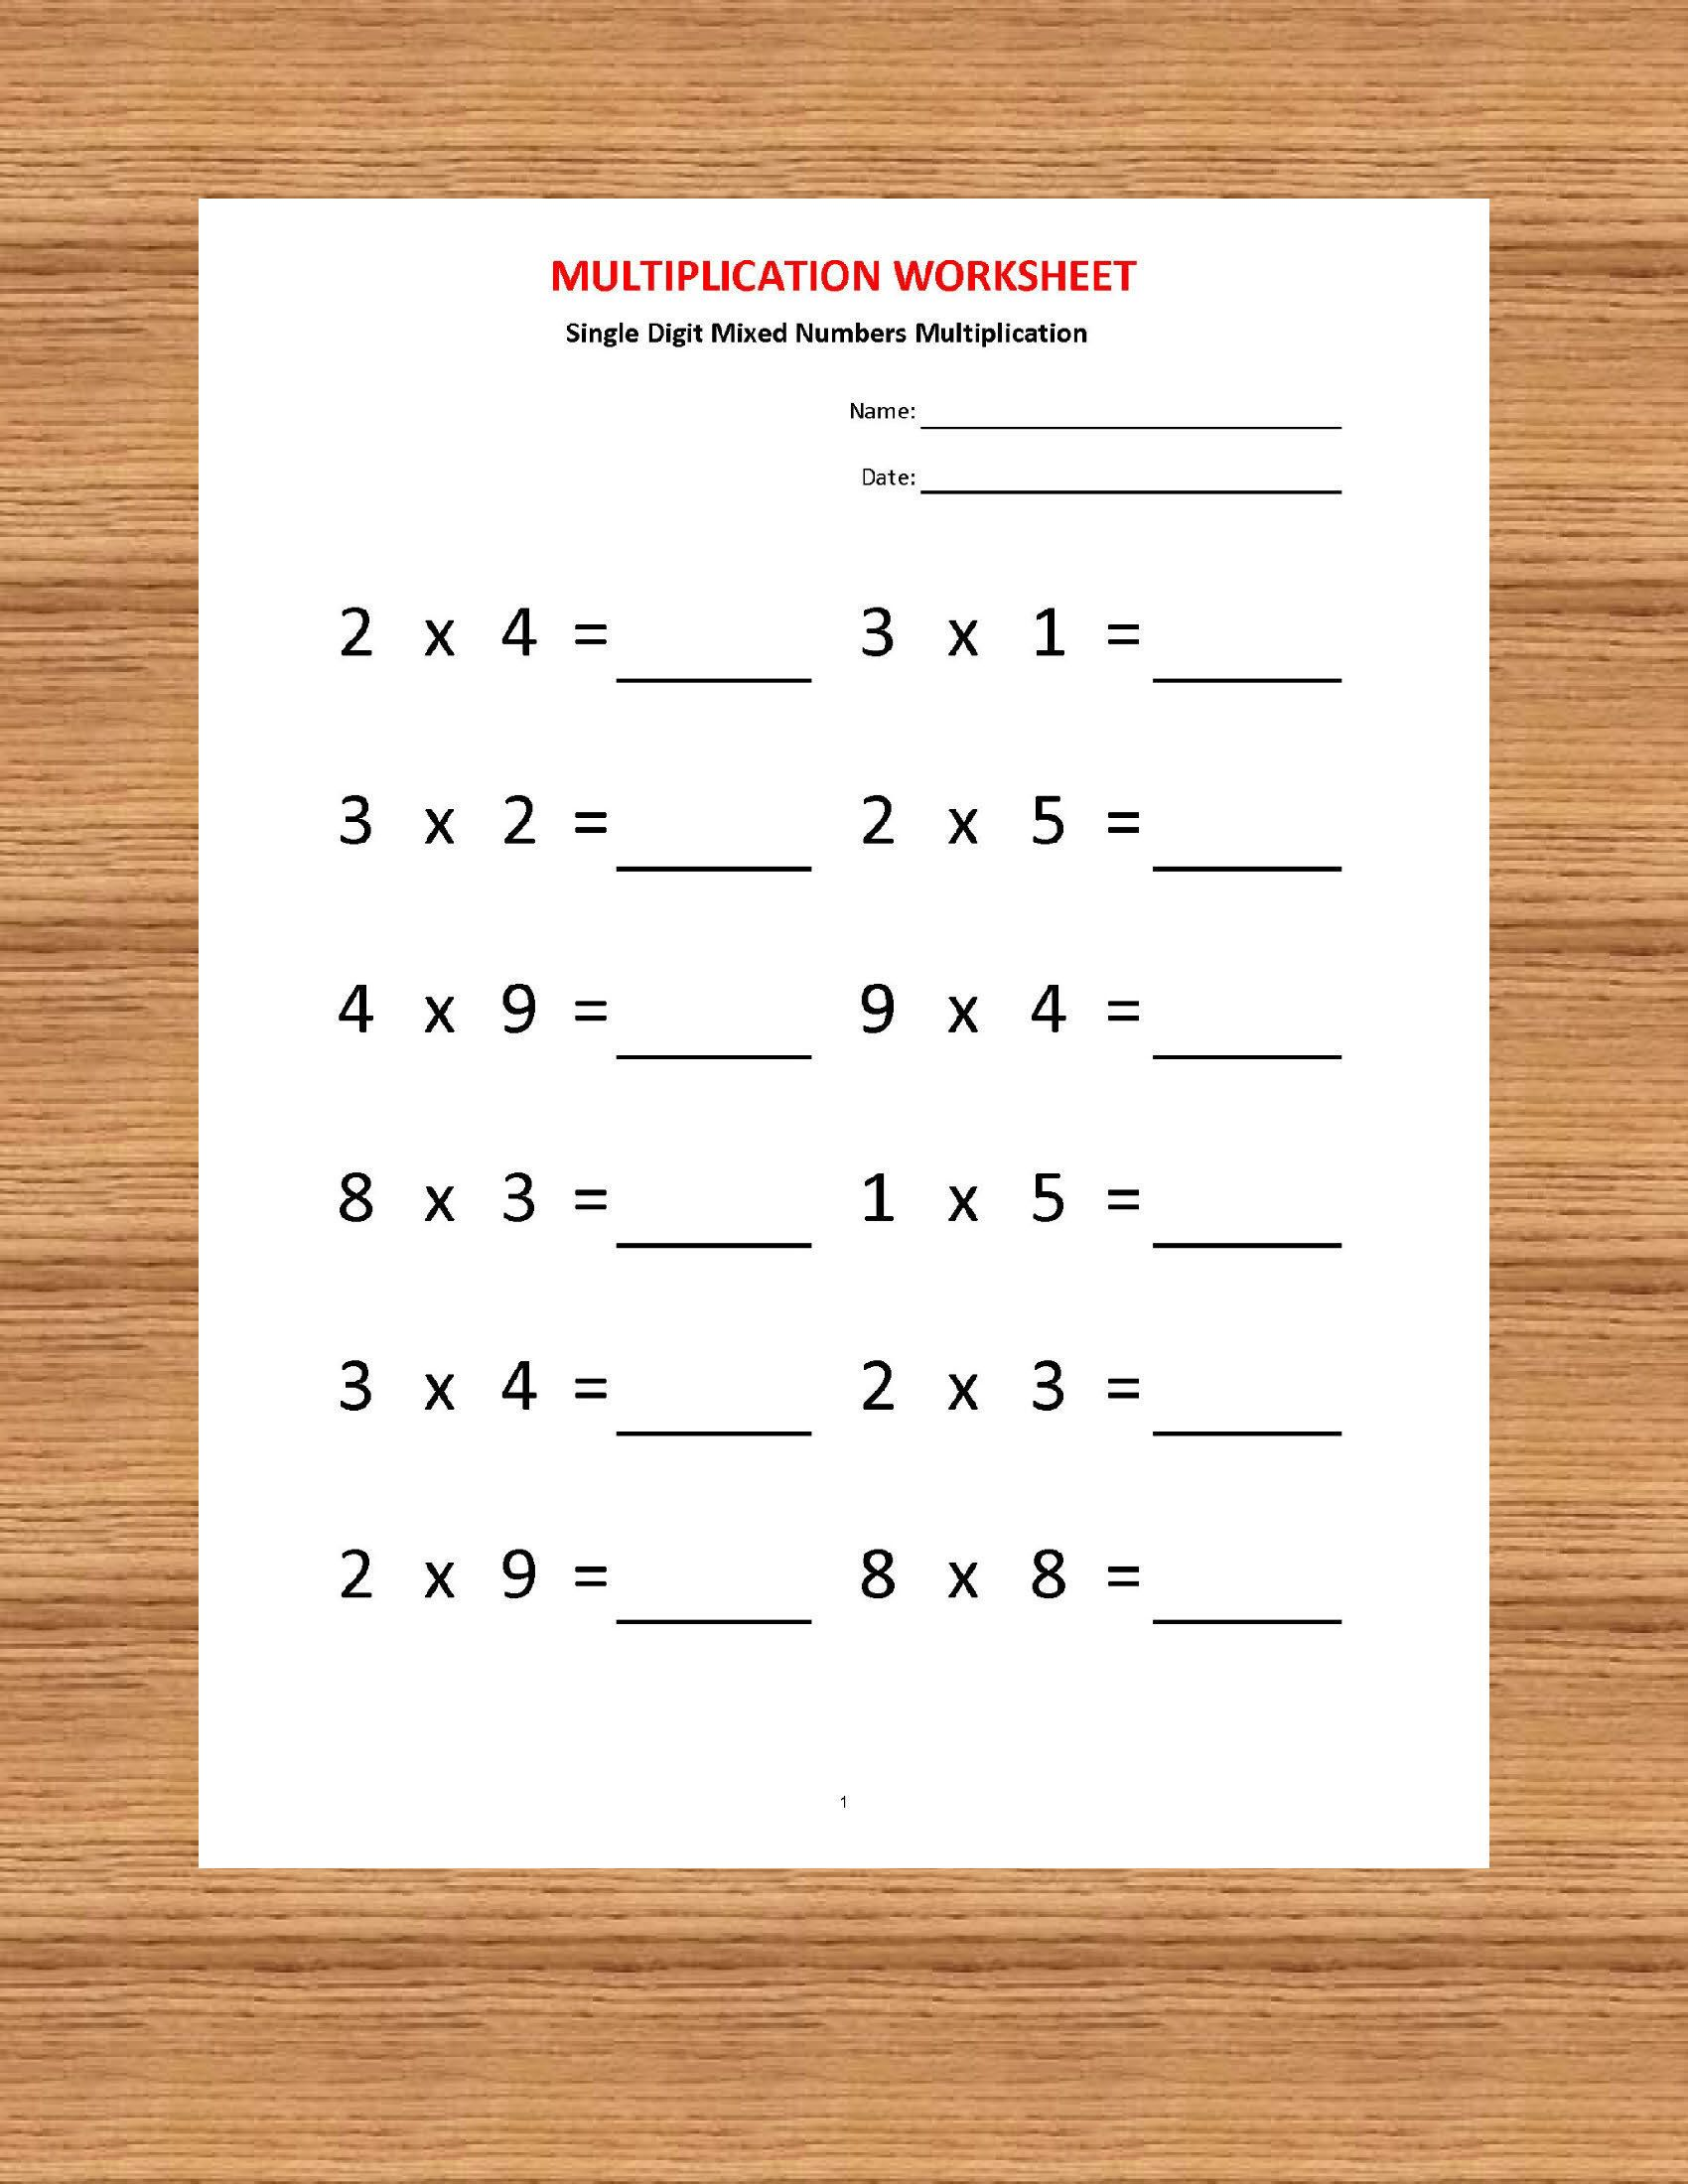 Multiplication Worksheets Printable Worksheets Etsy 2nd Grade Worksheets 2nd Grade Math Worksheets Math Fact Worksheets